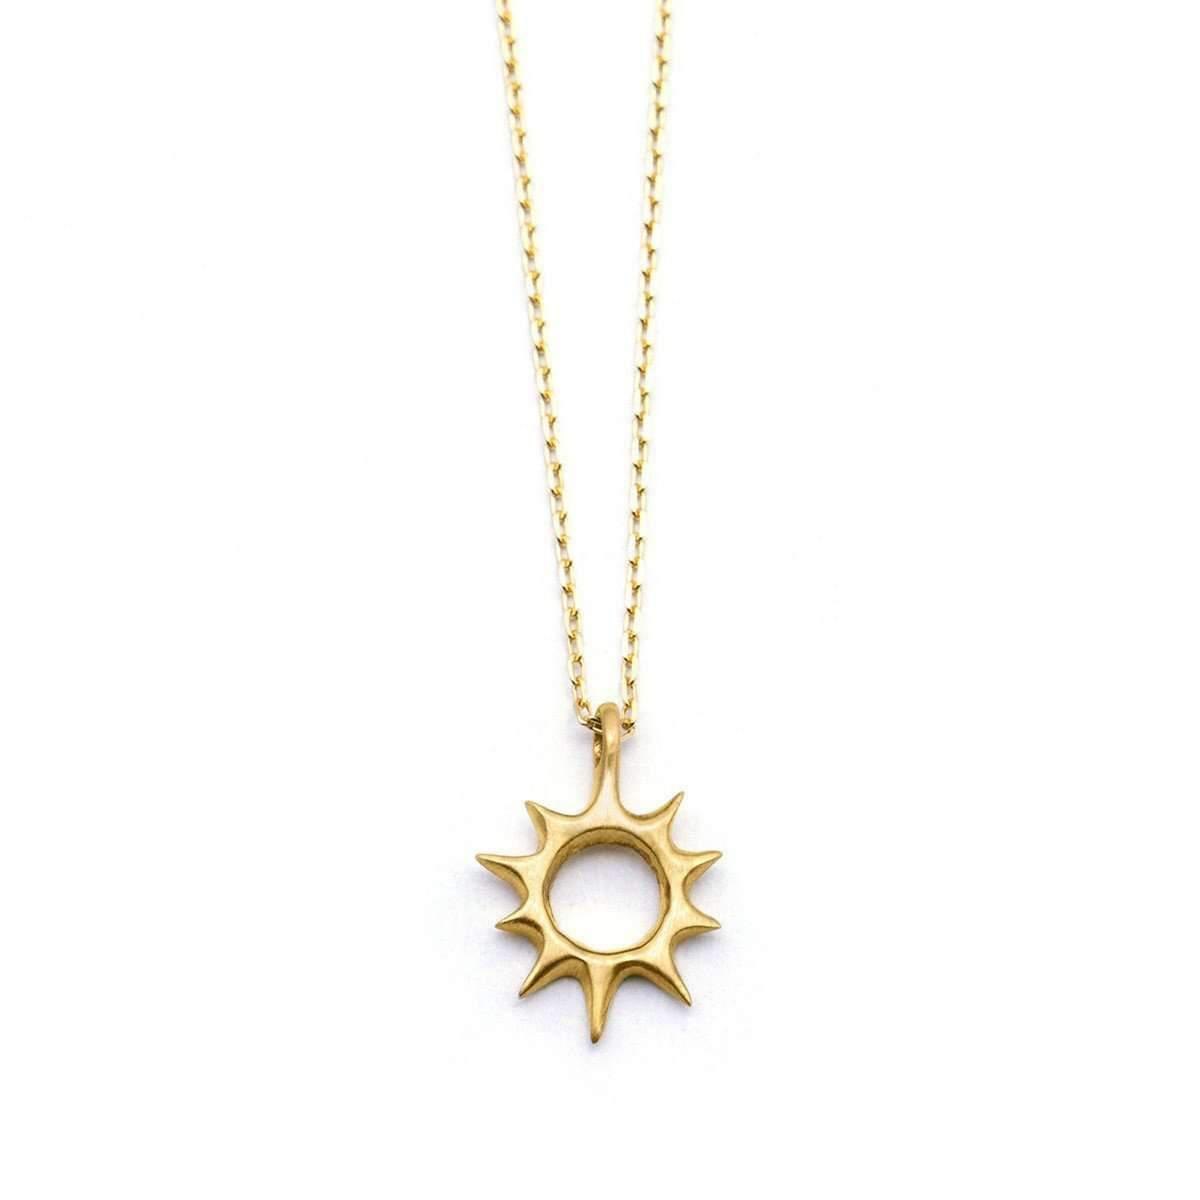 pendants necklace jewelry hop women men for from fashion hip pendant in masonic color stainless sun steel necklaces chain item golden ag